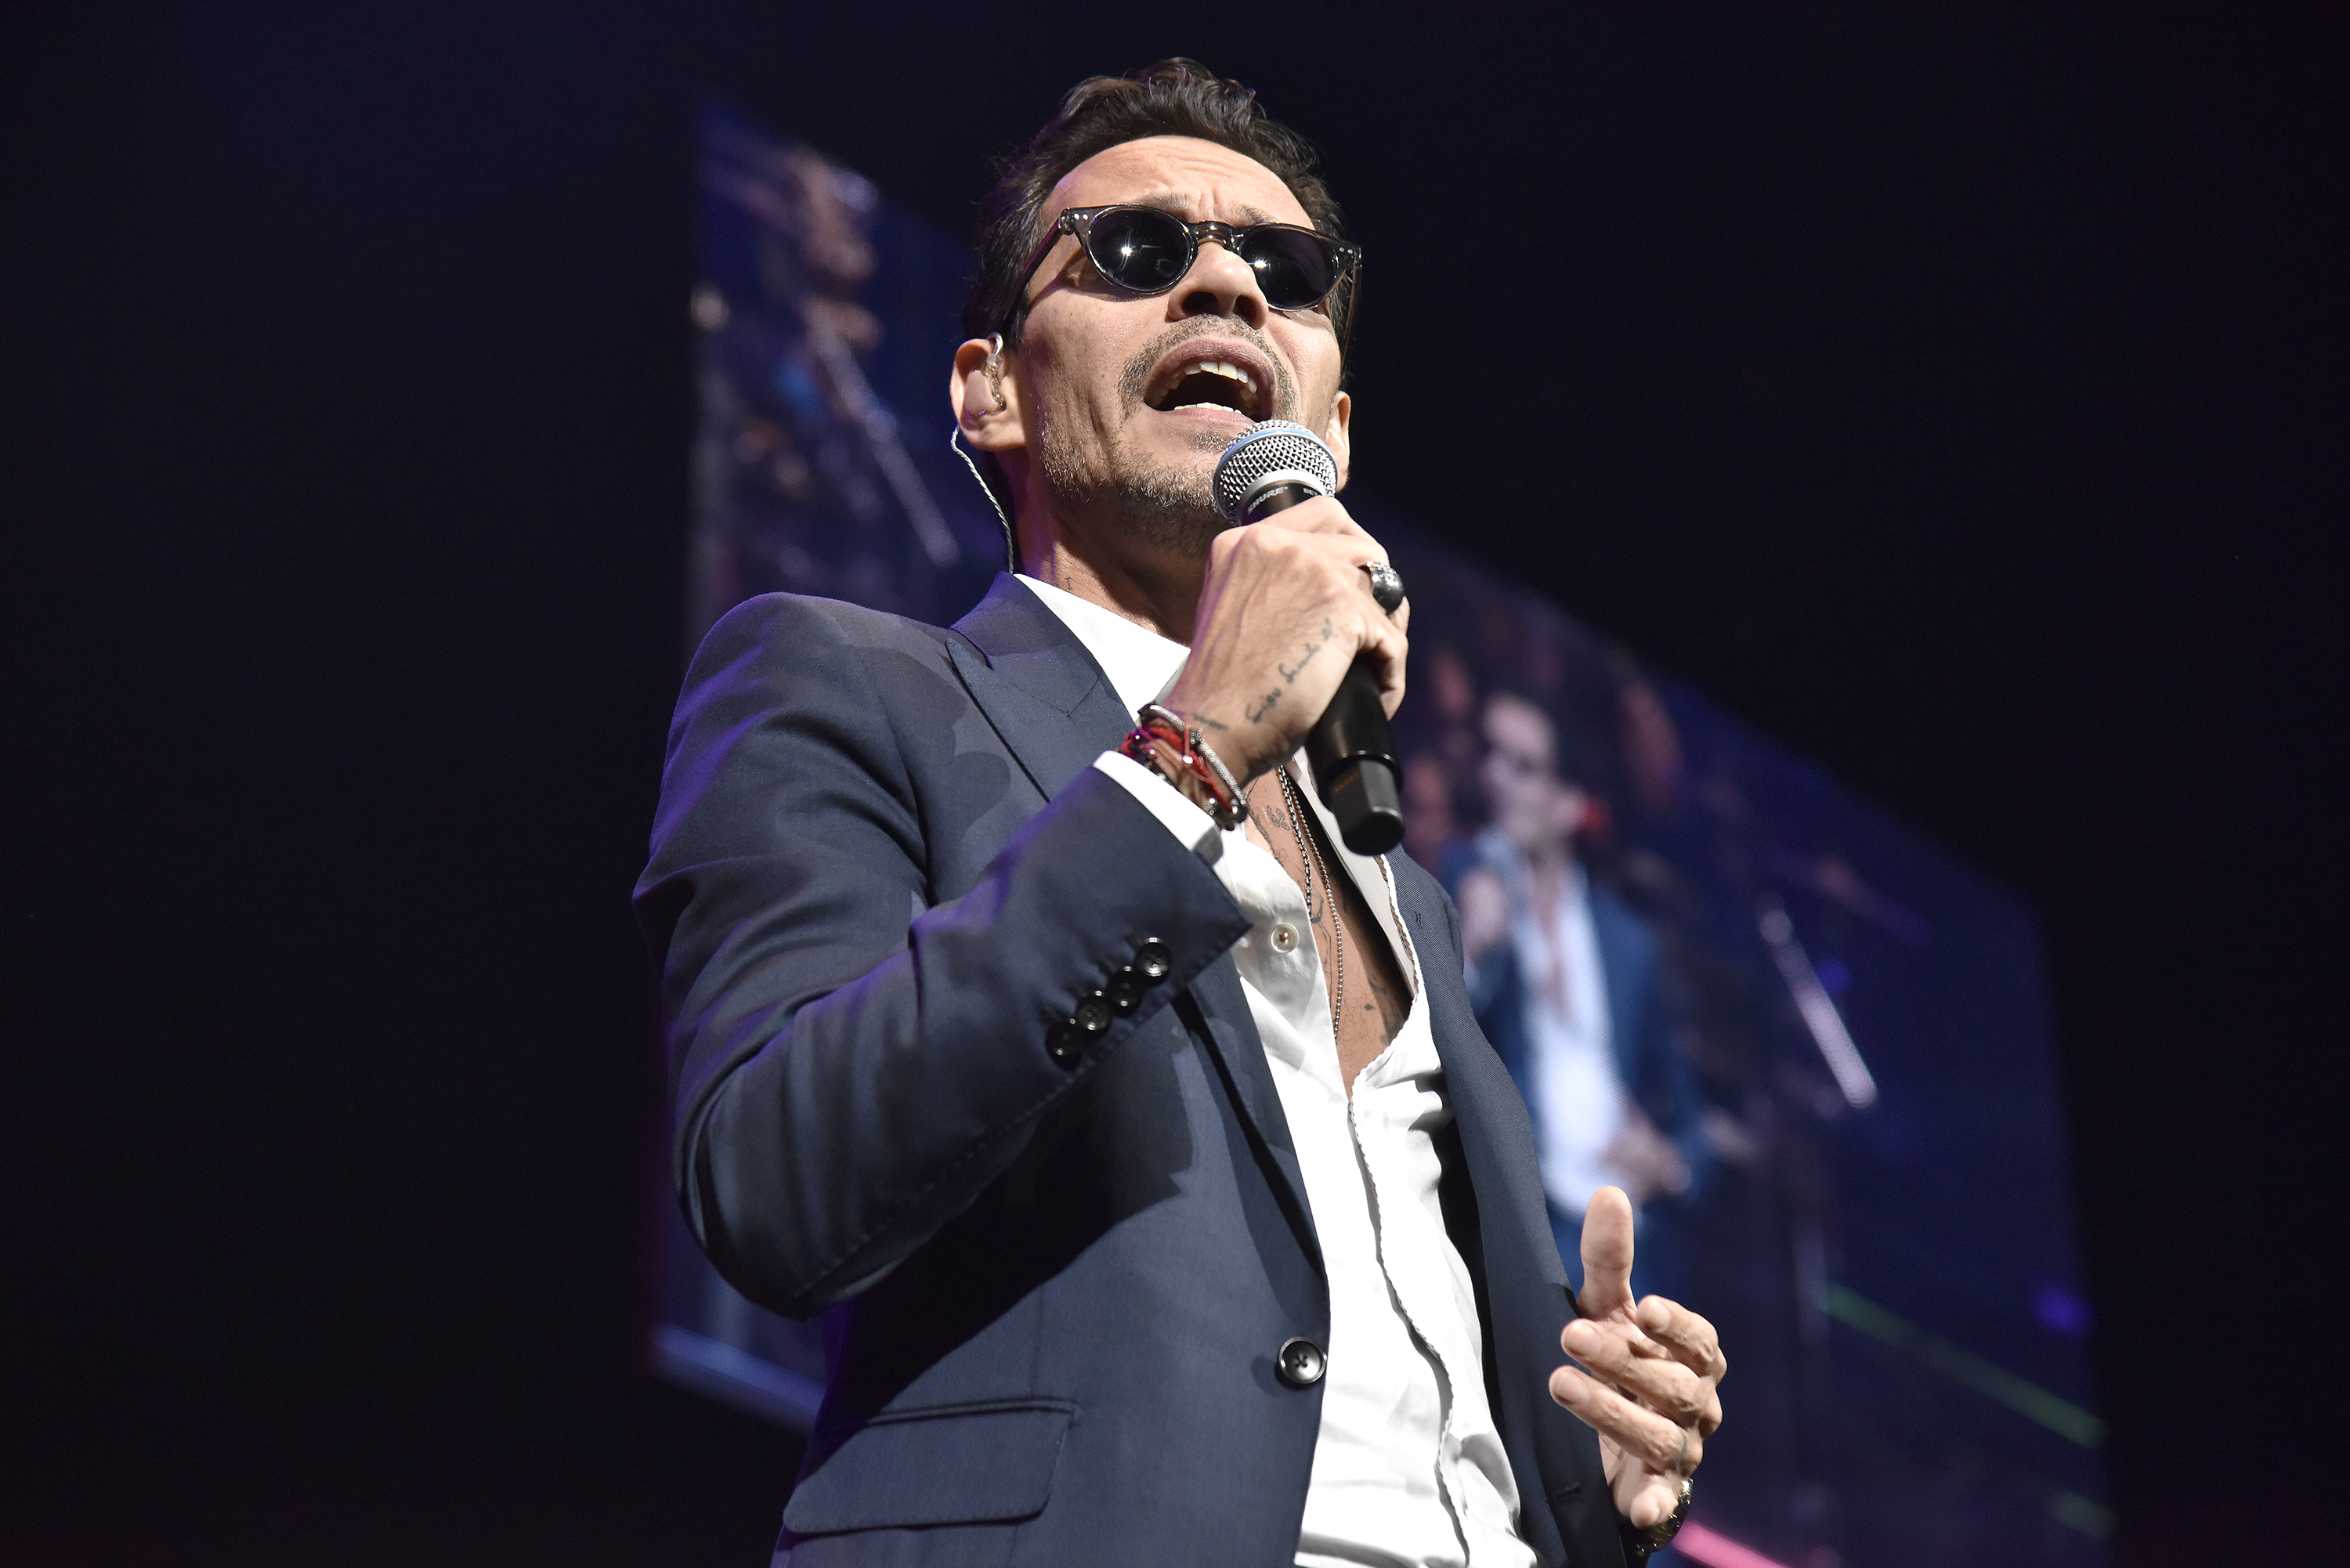 Marc Anthony In Concert - San Jose, CA